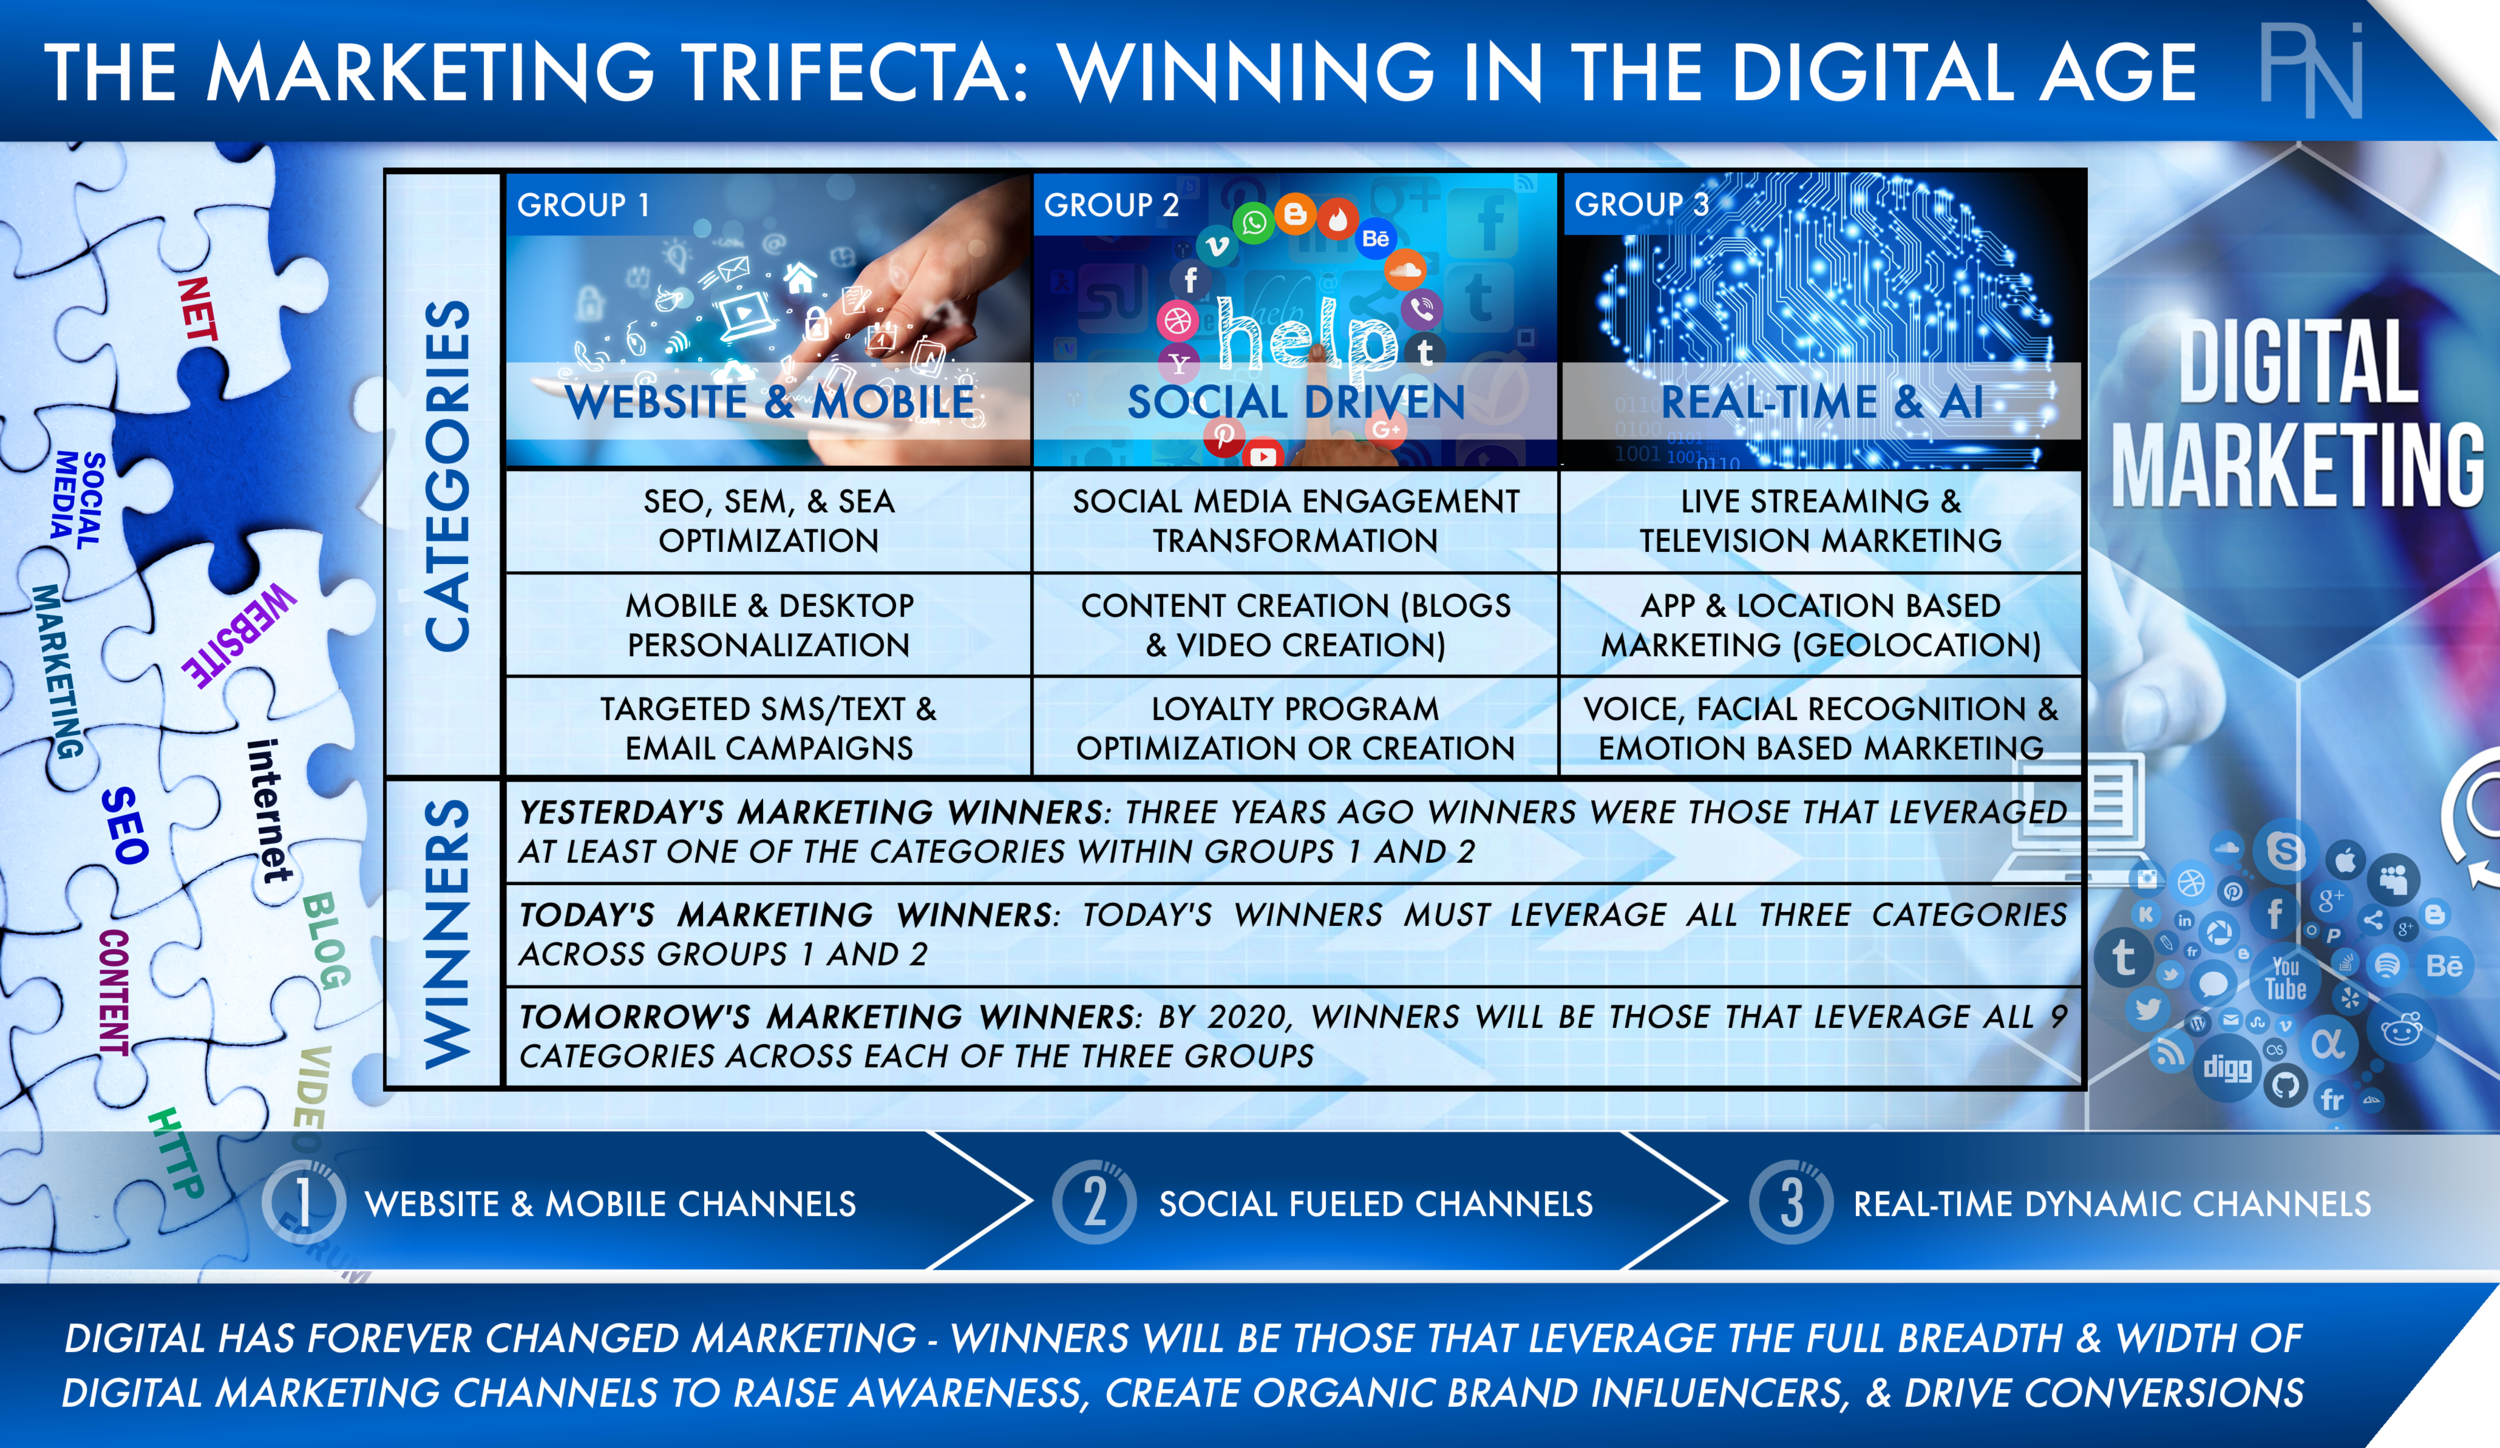 The Marketing Trifecta - Winning in the Digital Age (PNI Consulting).png